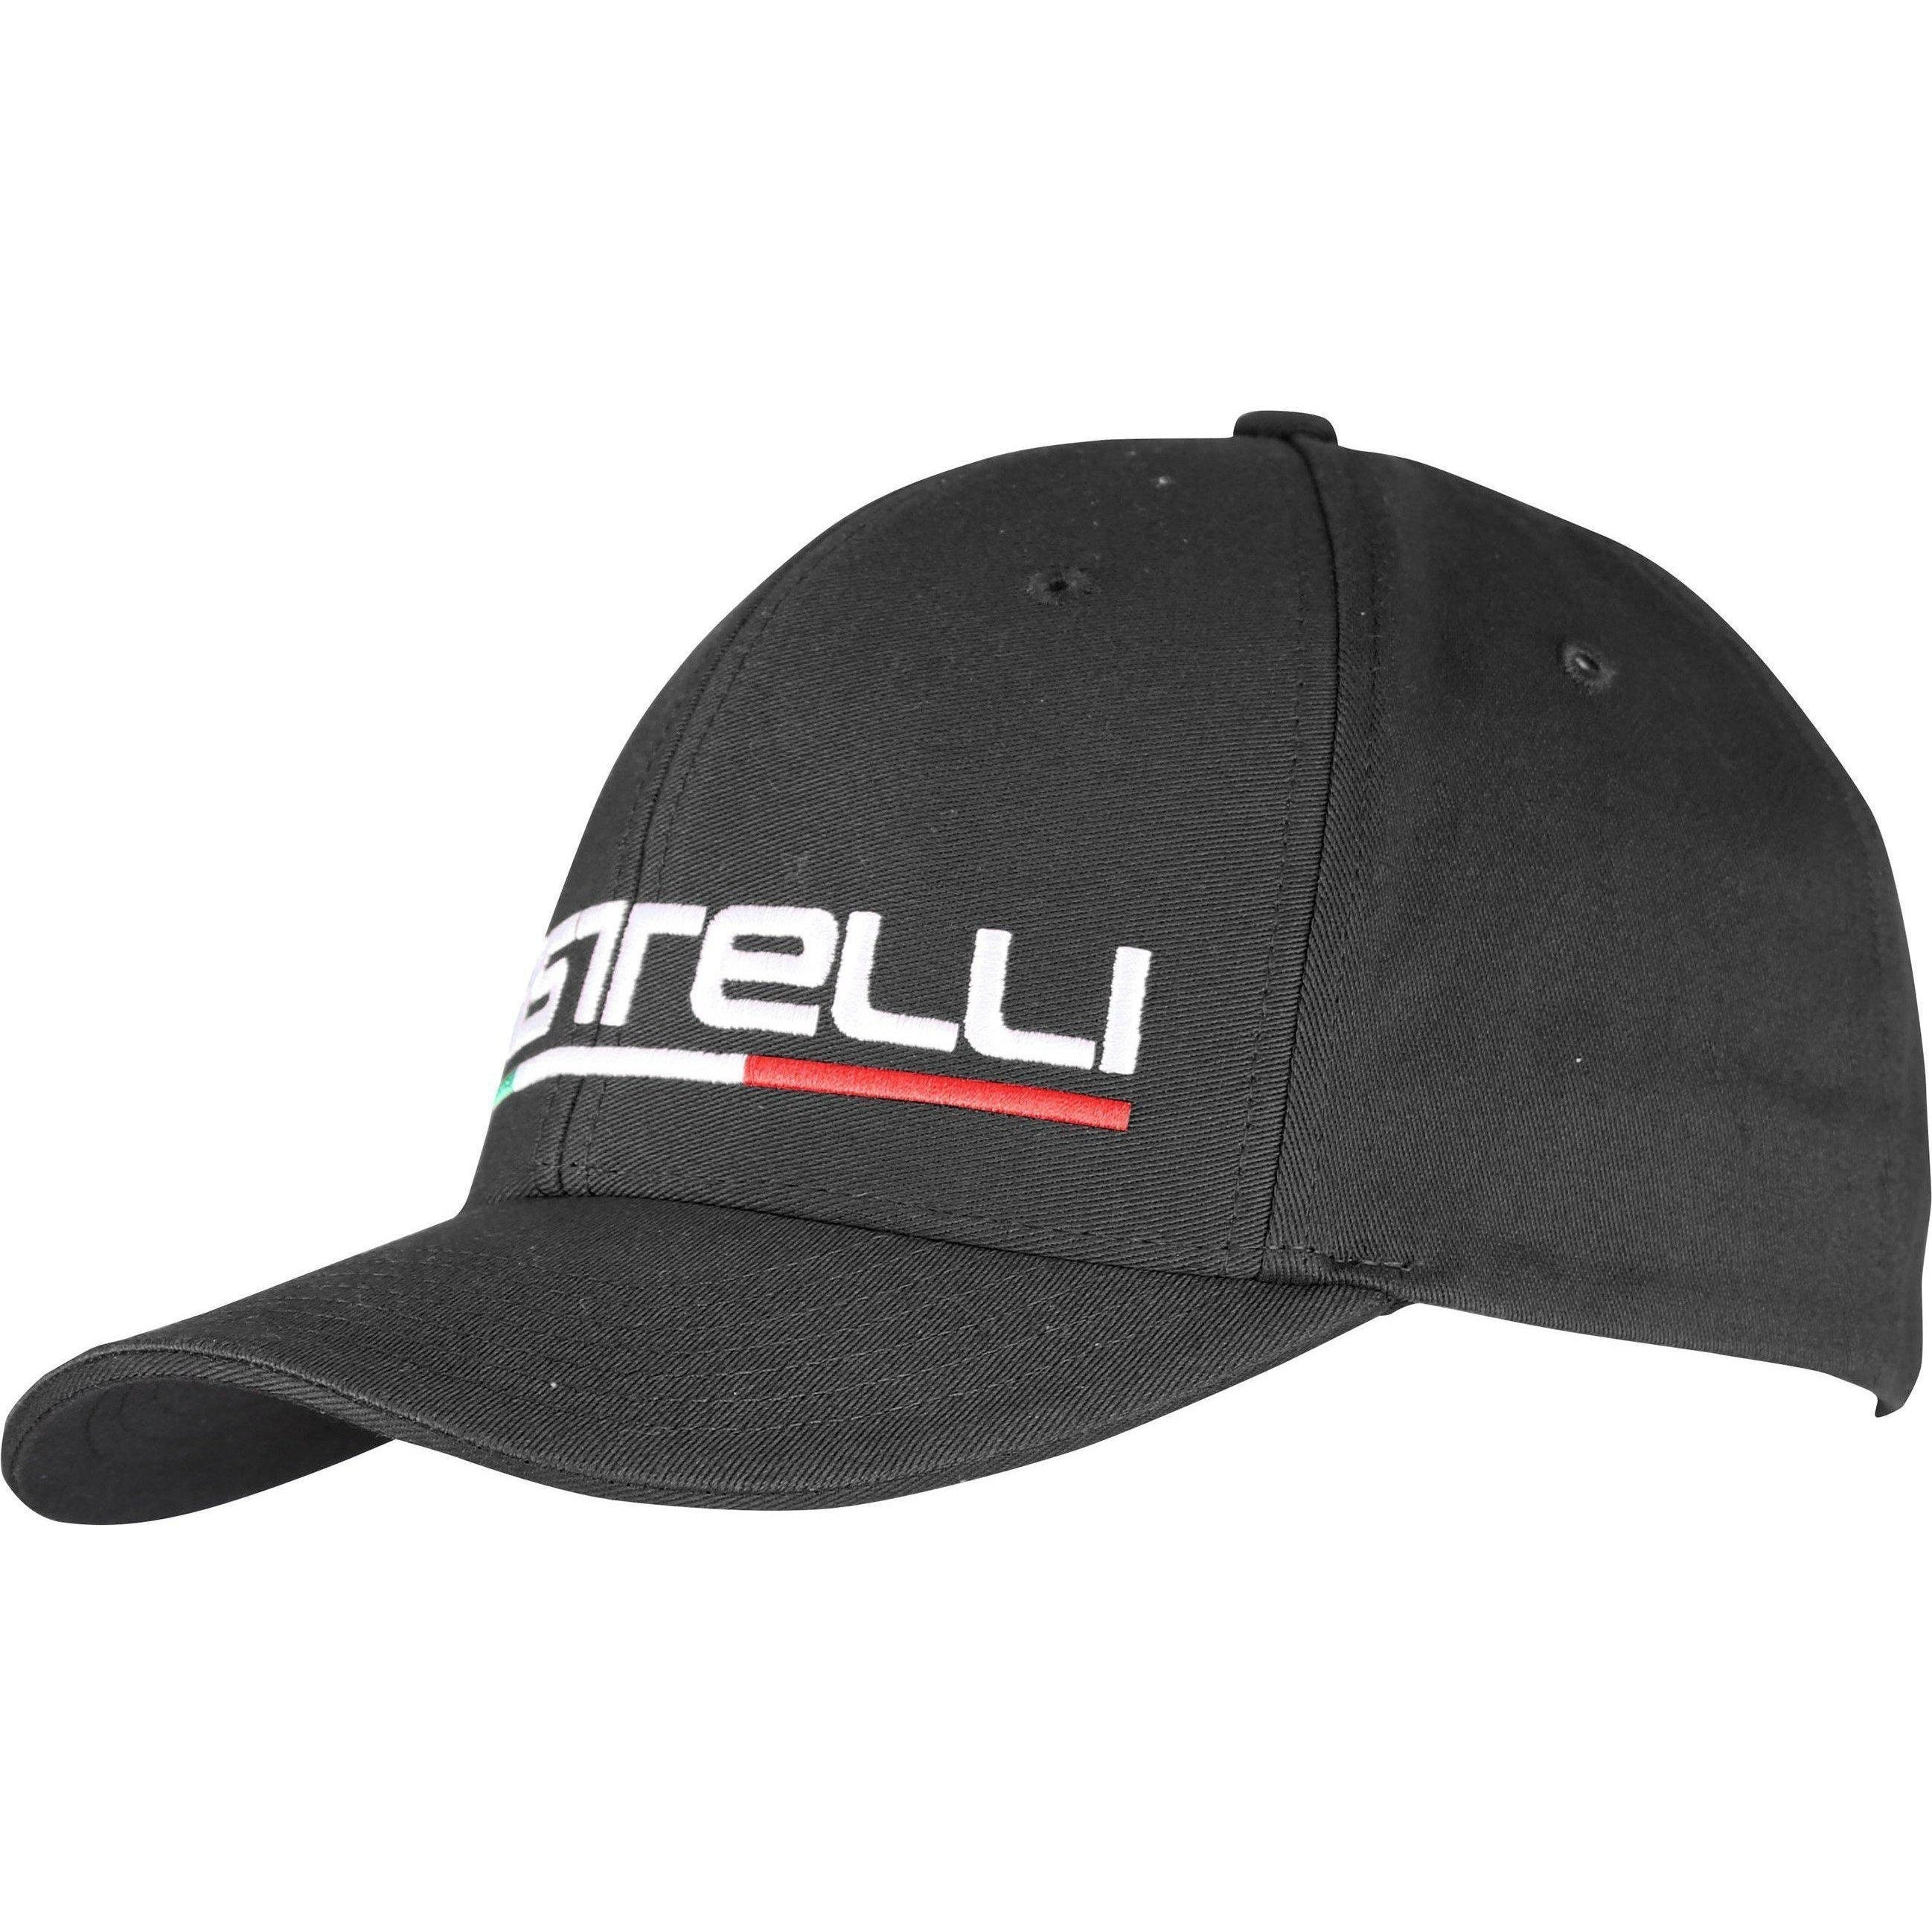 Castelli-Castelli Classic Cap-Black-Uni-CS181030108-saddleback-elite-performance-cycling